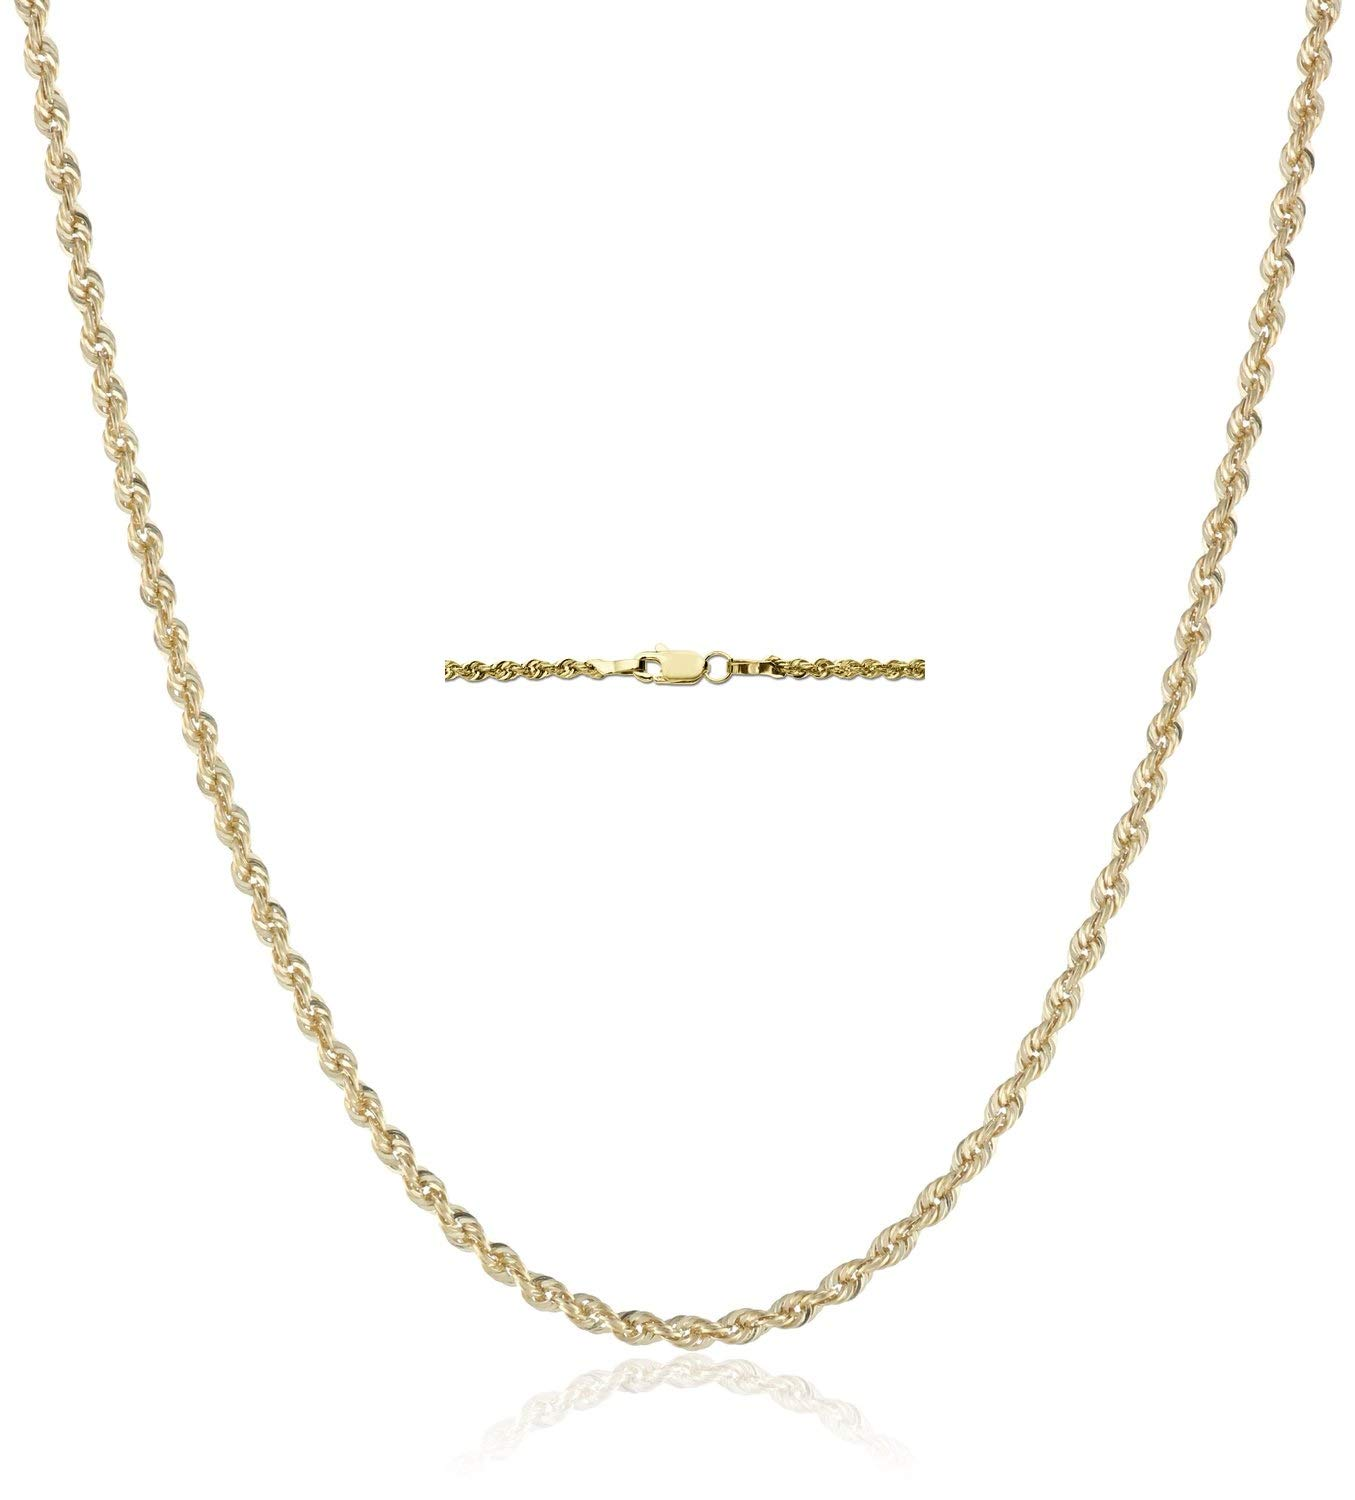 18K Gold 2.5MM Diamond Cut Rope Chain Necklace Unisex Sizes 16''-30'' - 18 Karat Gold (16)